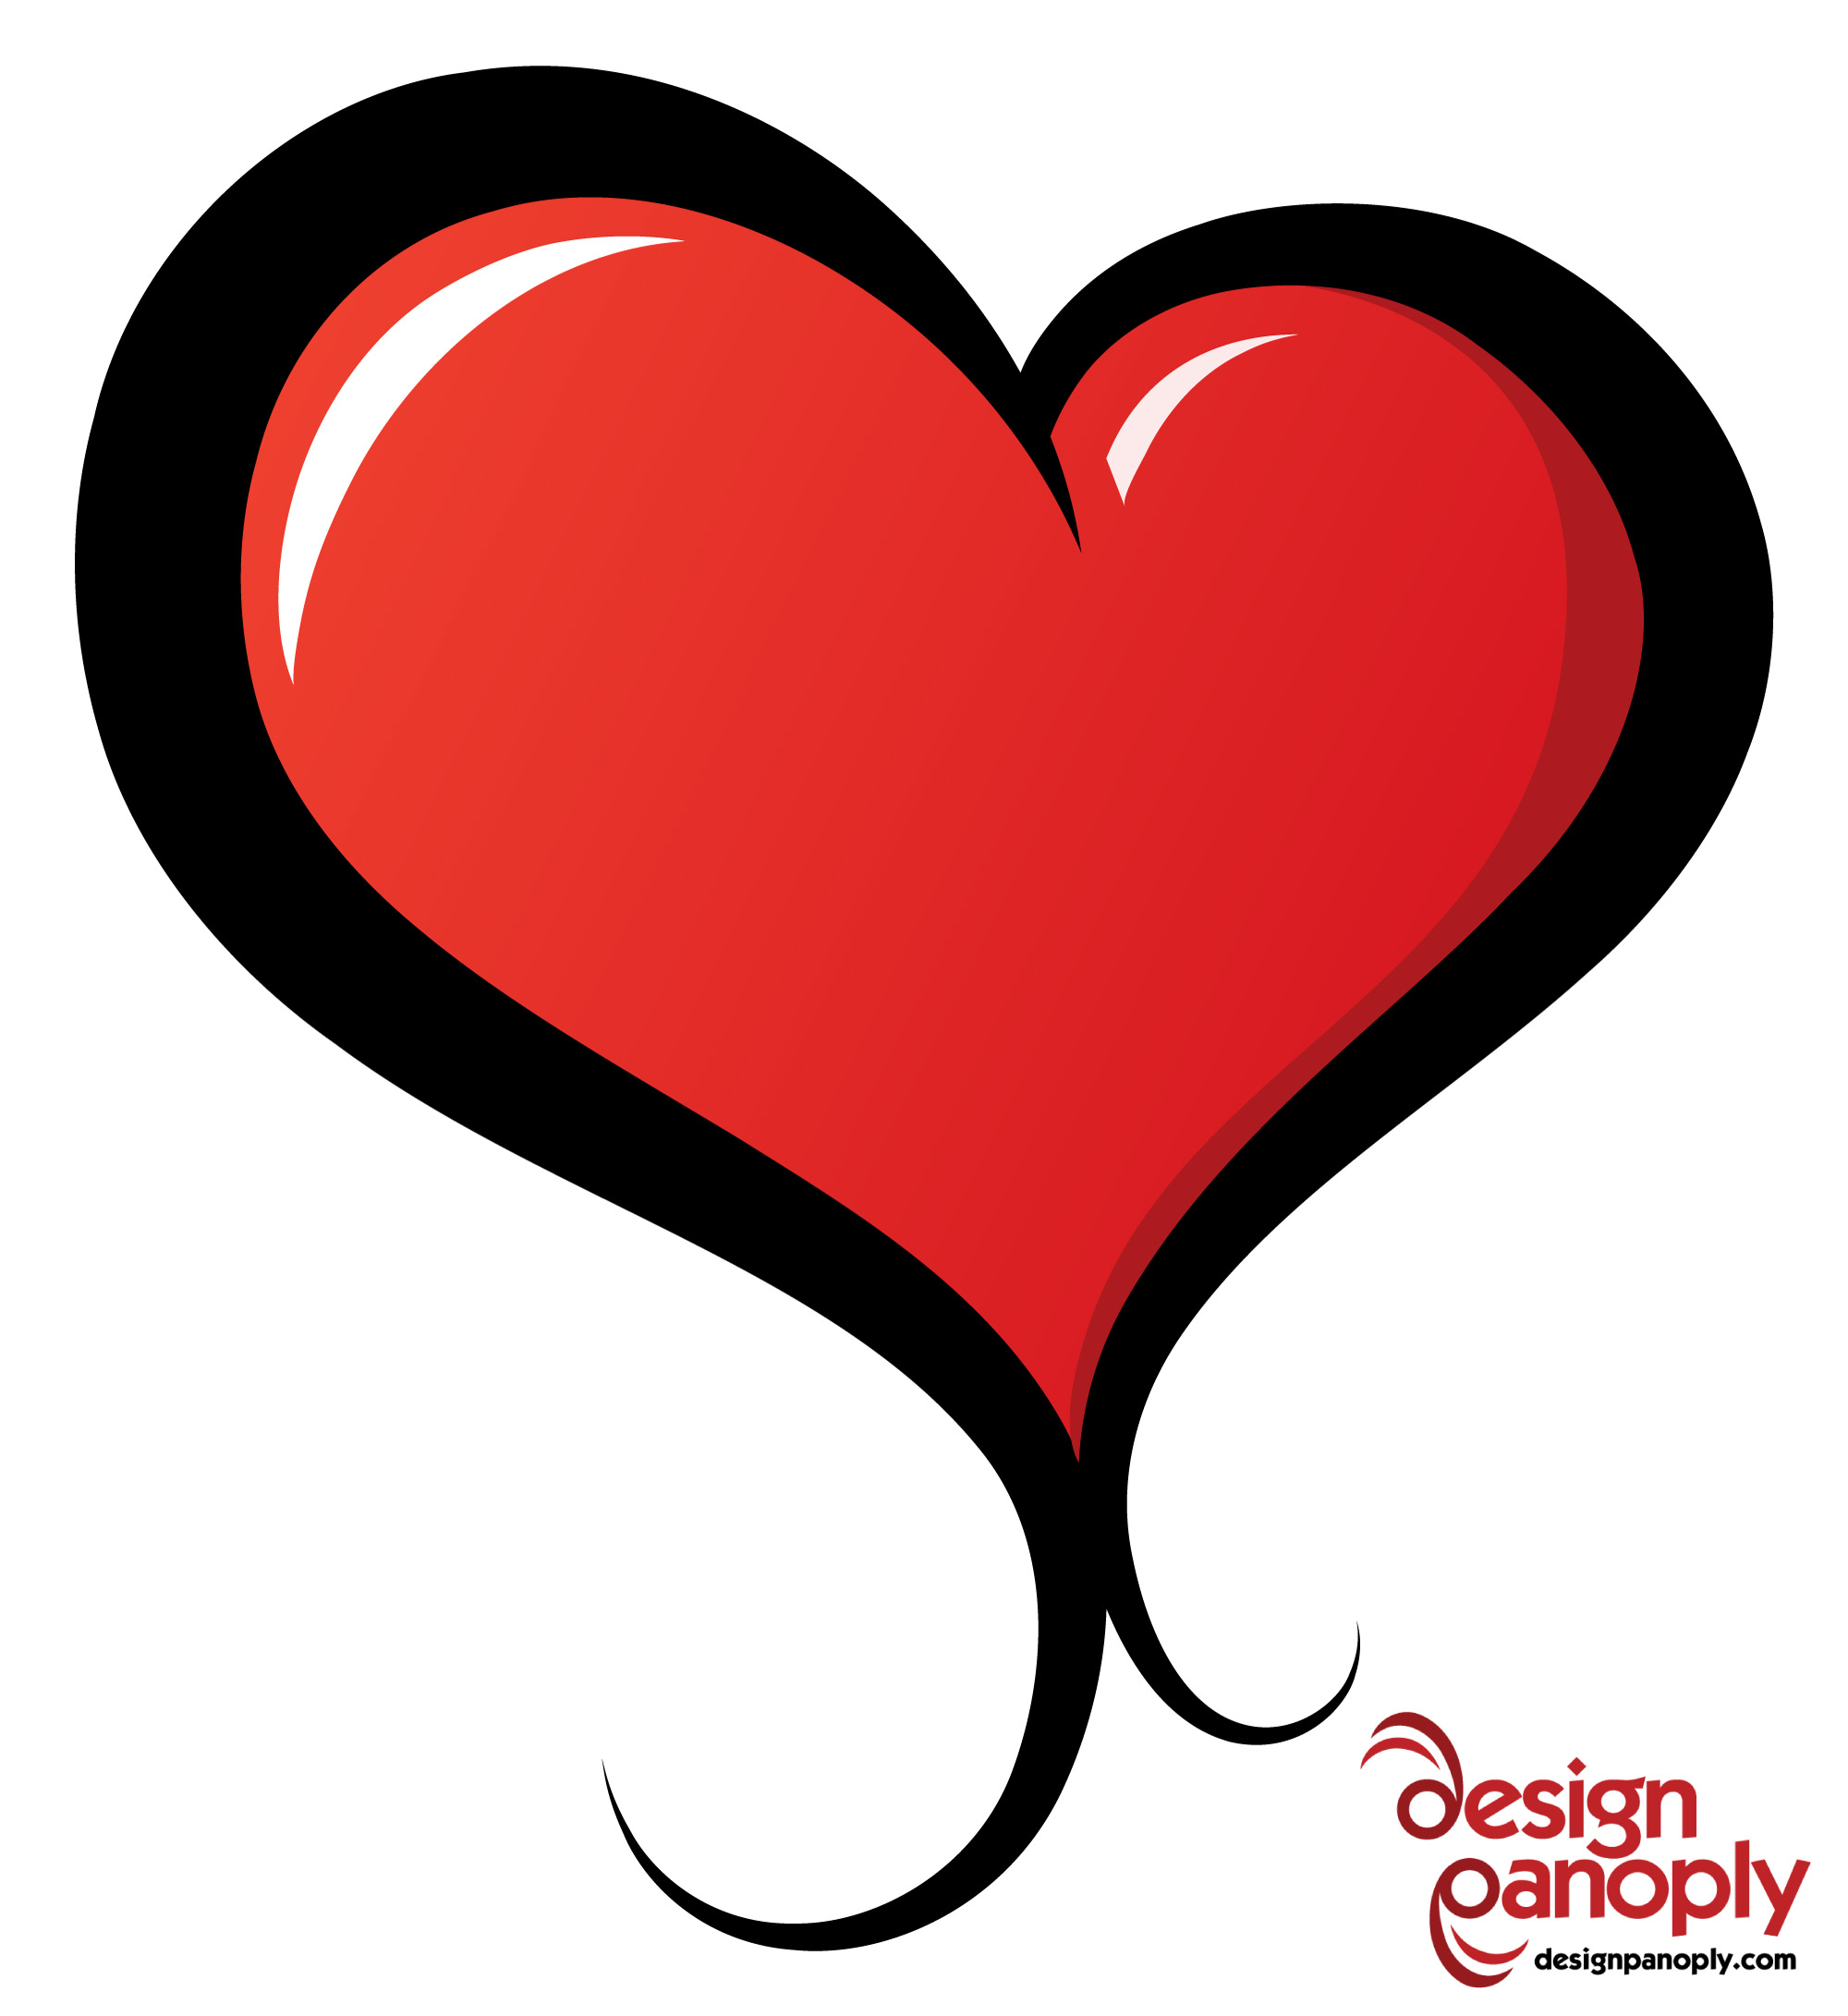 heart vector free download at getdrawings | free download  getdrawings.com